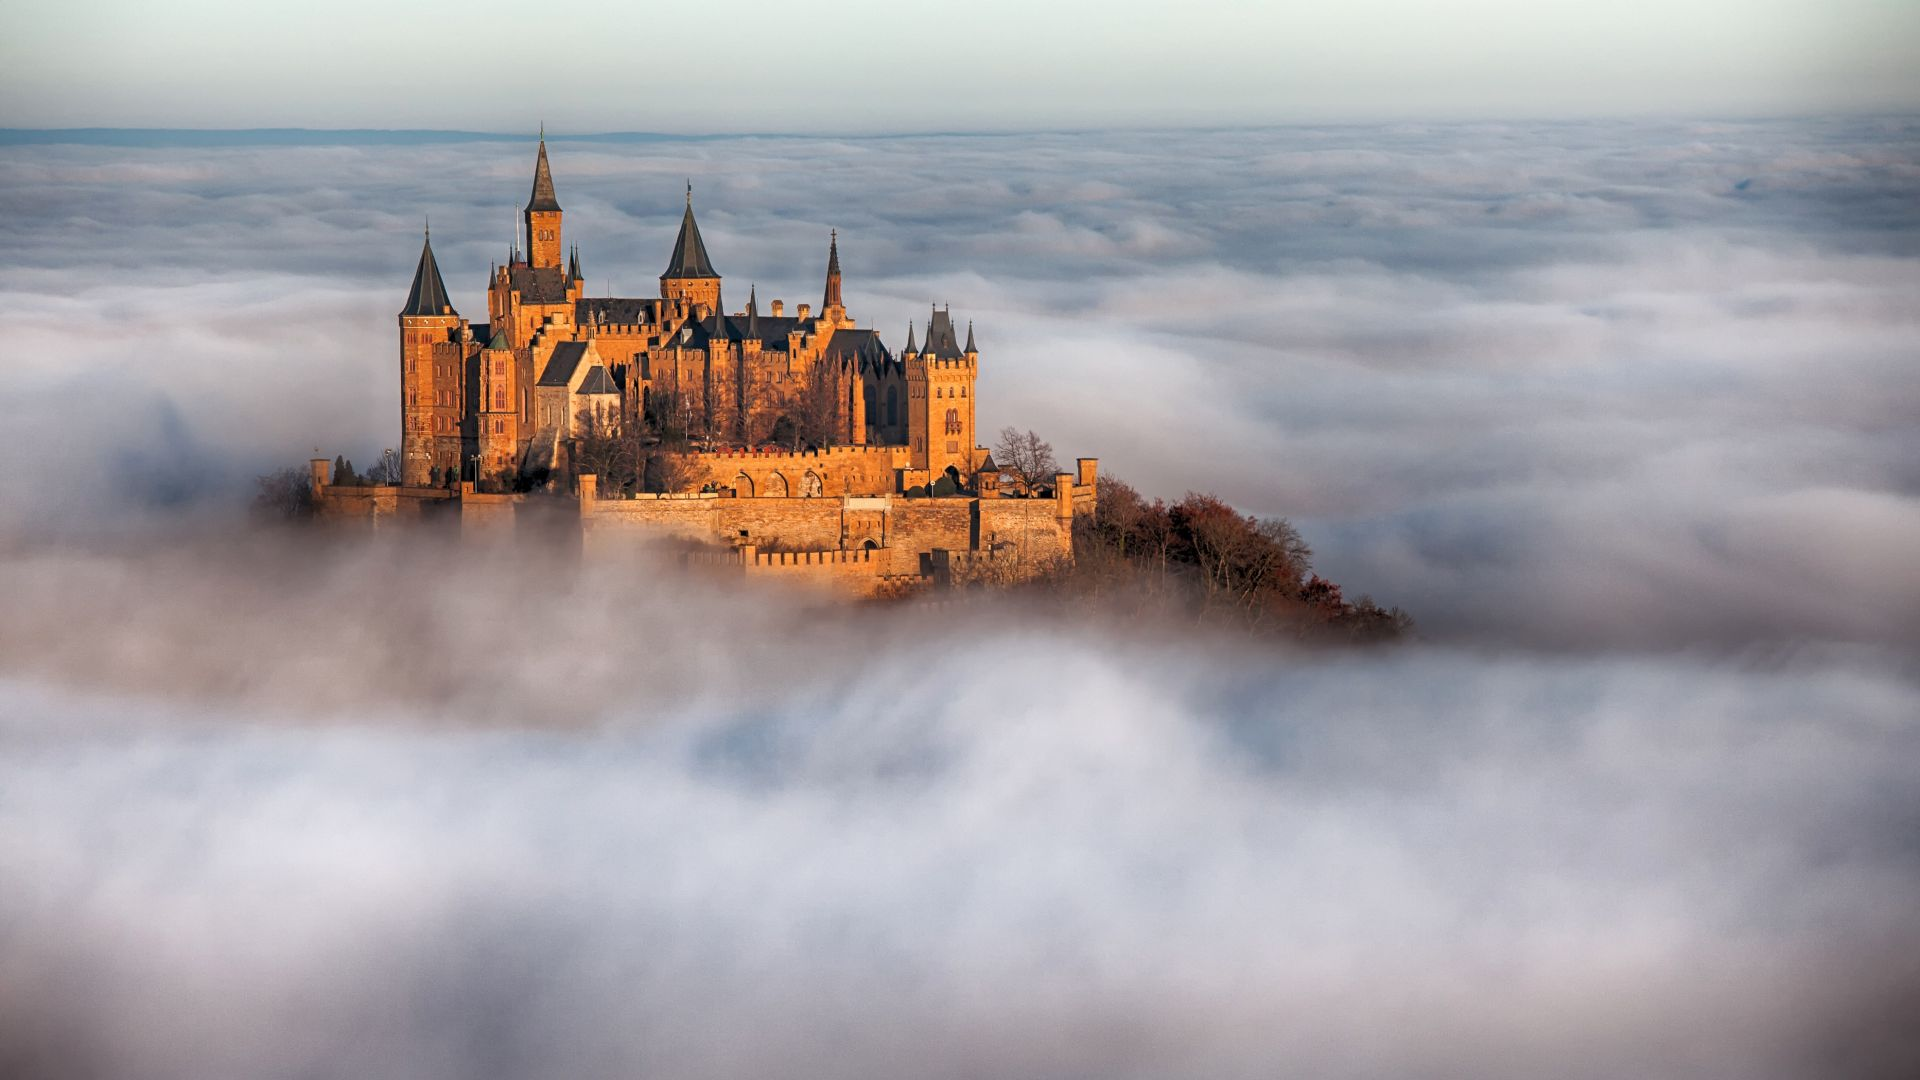 Hohenzollern Castle, Germany, Europe, fog, 4k (horizontal)